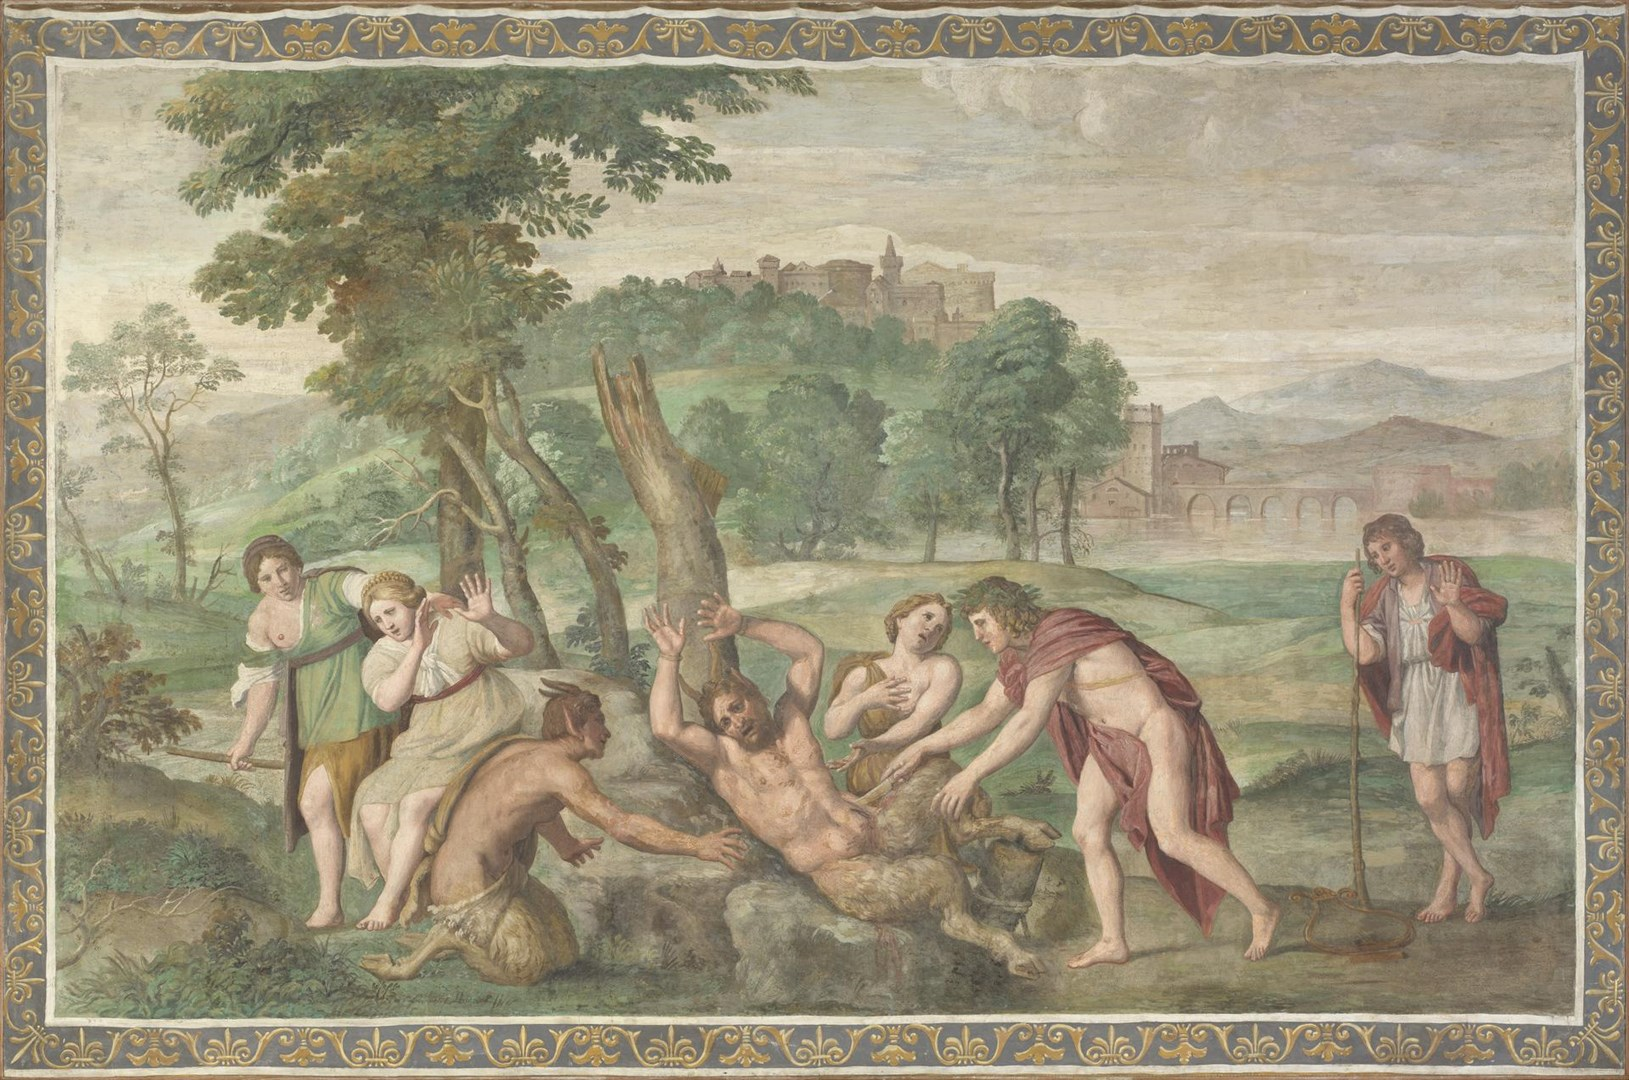 The Flaying of Marsyas by Domenichino and assistants